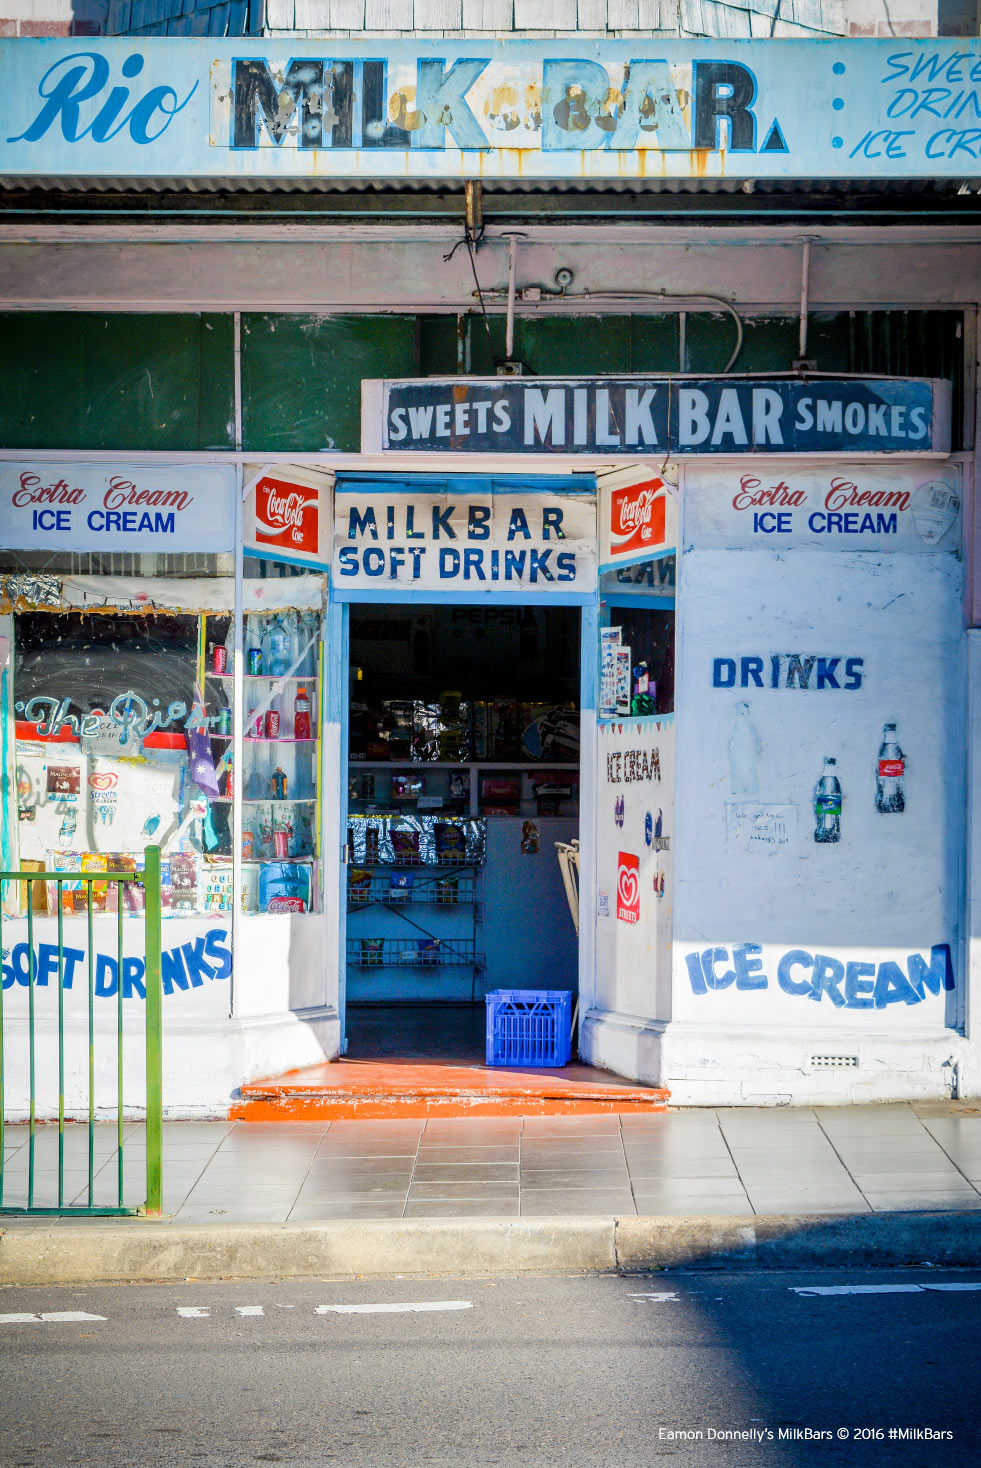 The-Rio-Milk-Bar-Eamon-Donnelly's-Milk-Bars-Book-Project-(c)-2001-2016.jpg